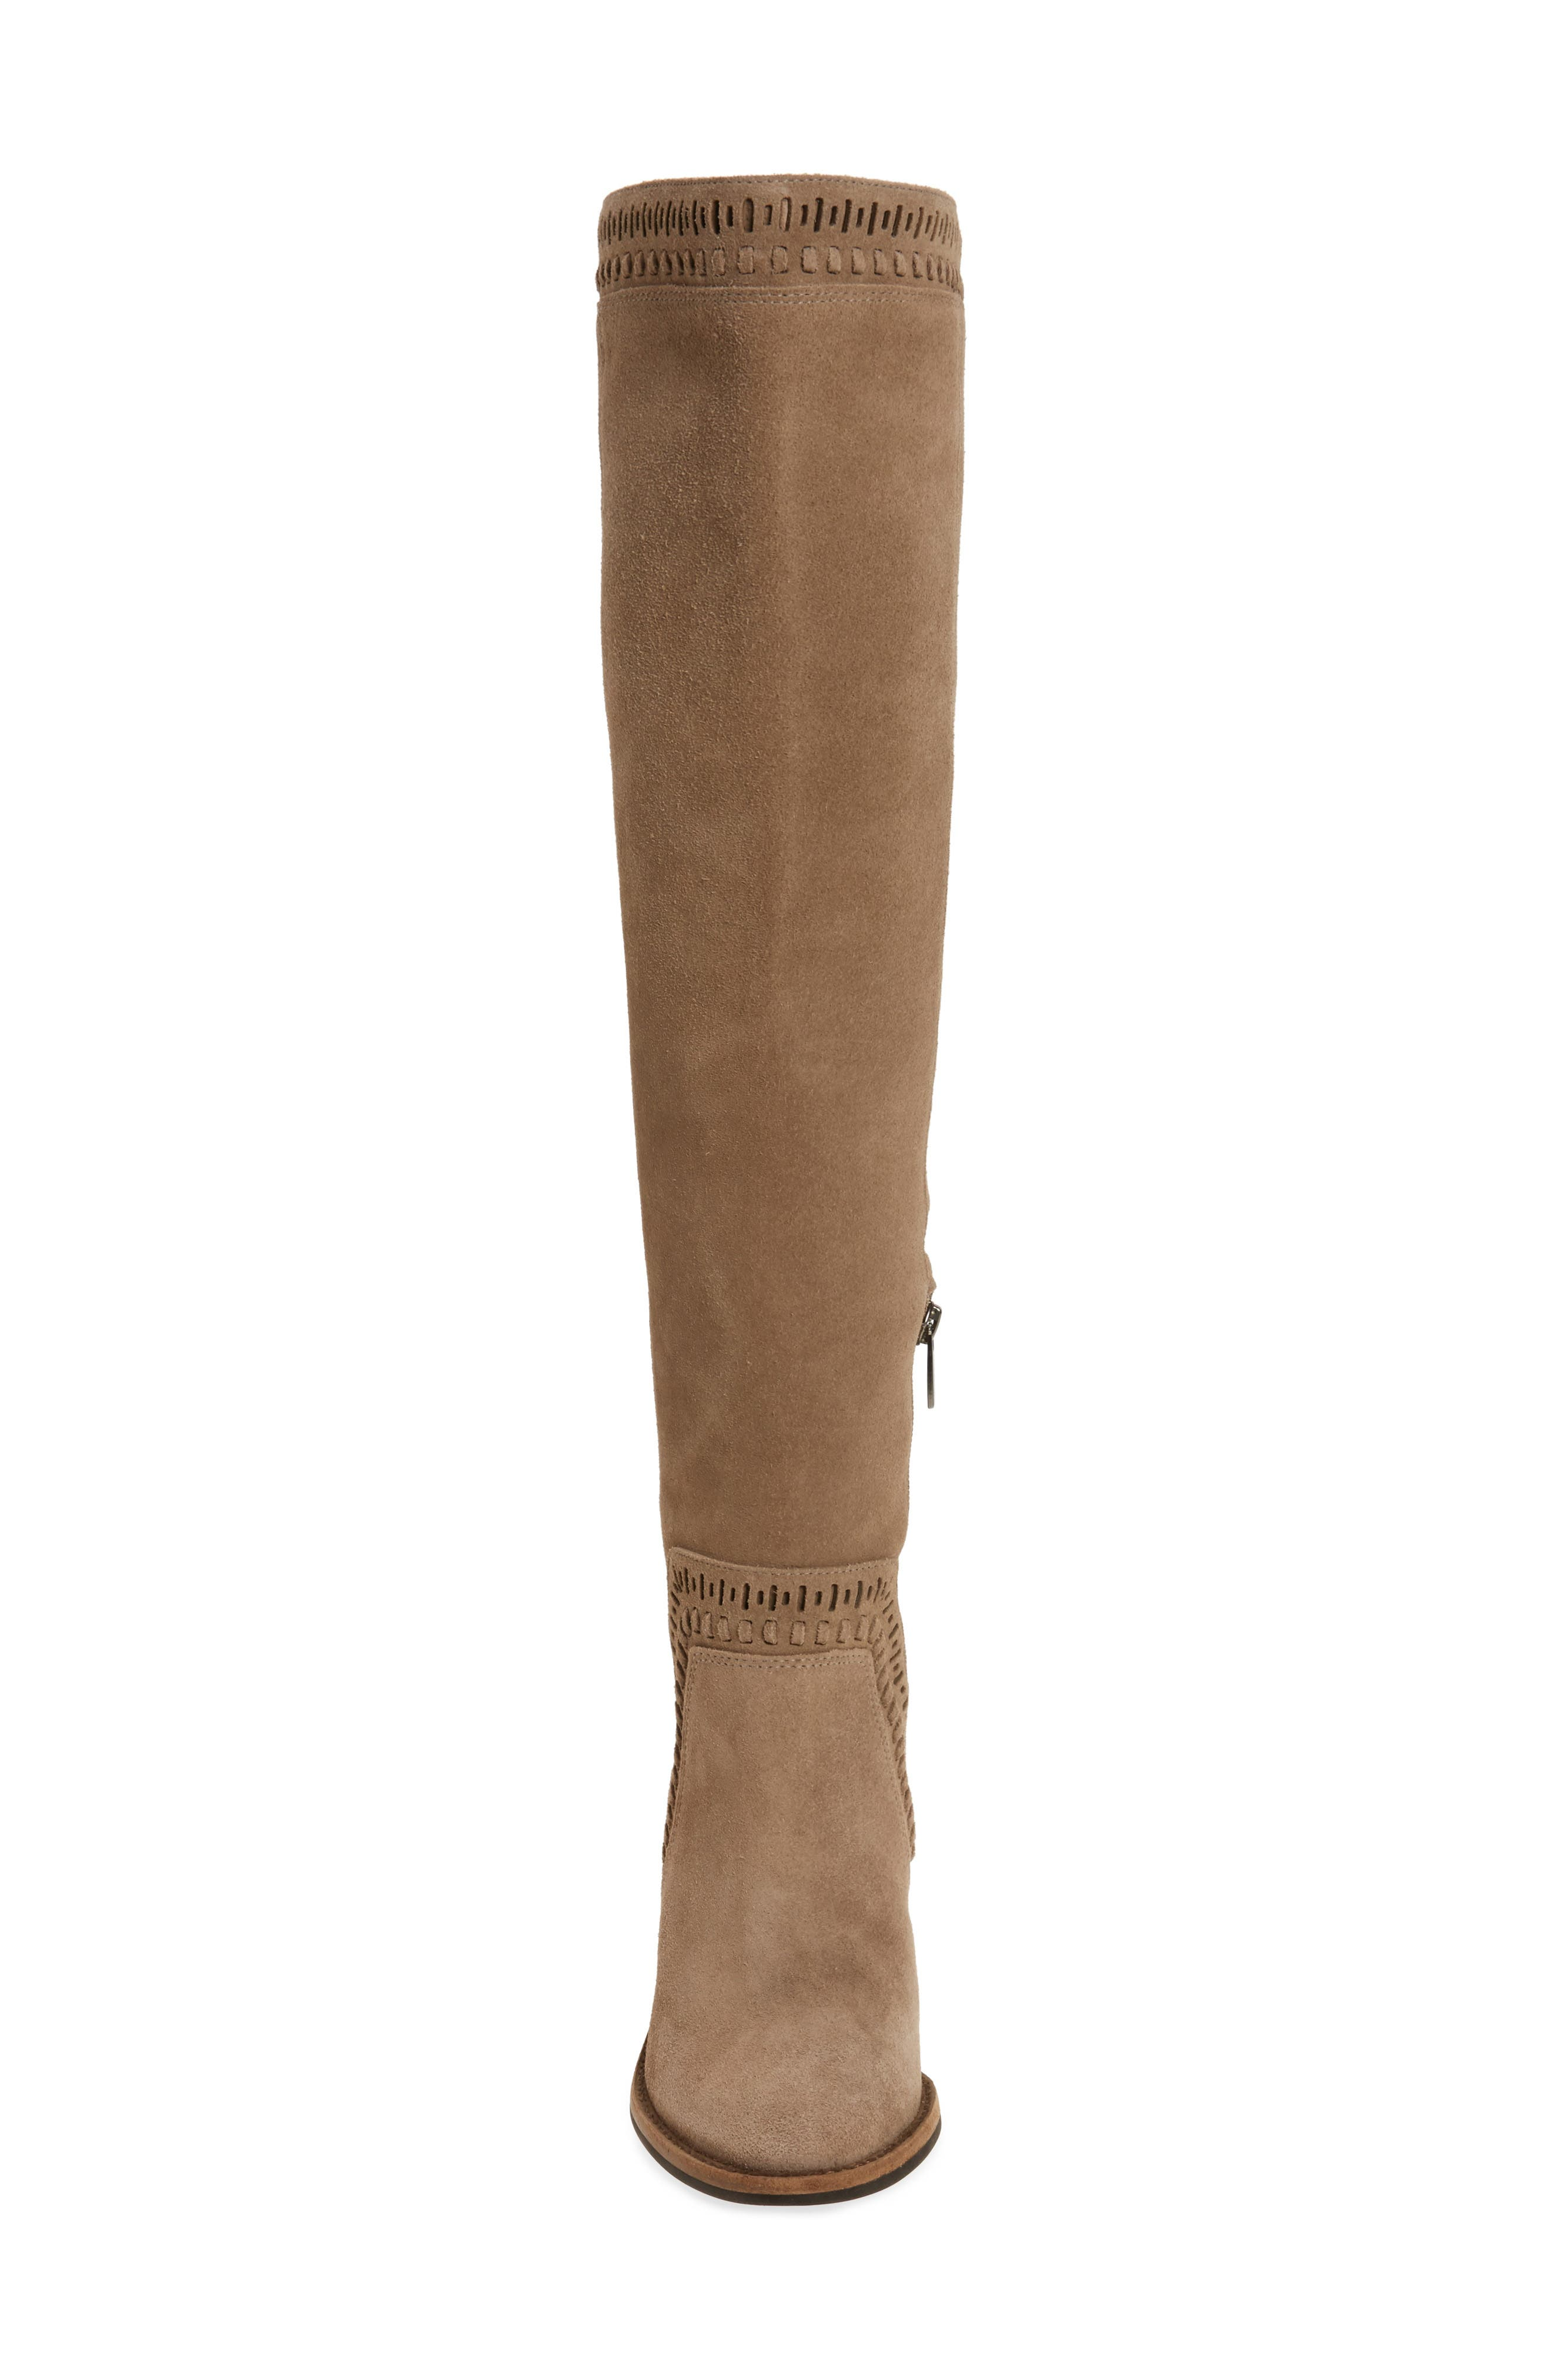 Madolee Over the Knee Boot,                             Alternate thumbnail 4, color,                             Foxy